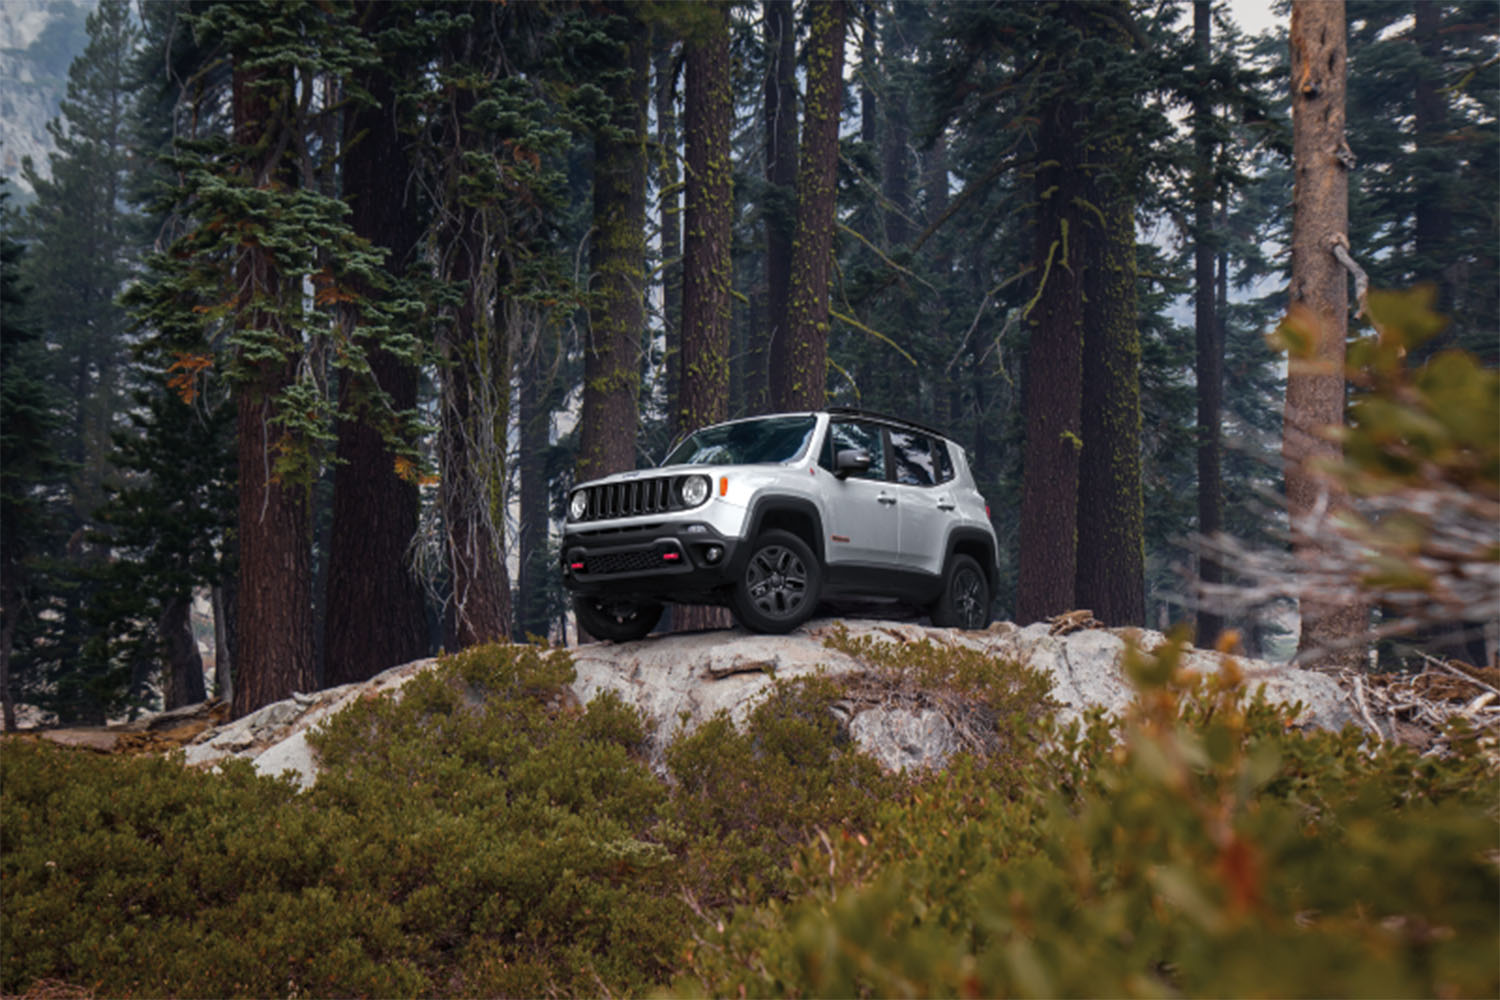 Jeep Renegades available in Bloomfield Hills, MI at Golling Chrysler Jeep Dodge Ram